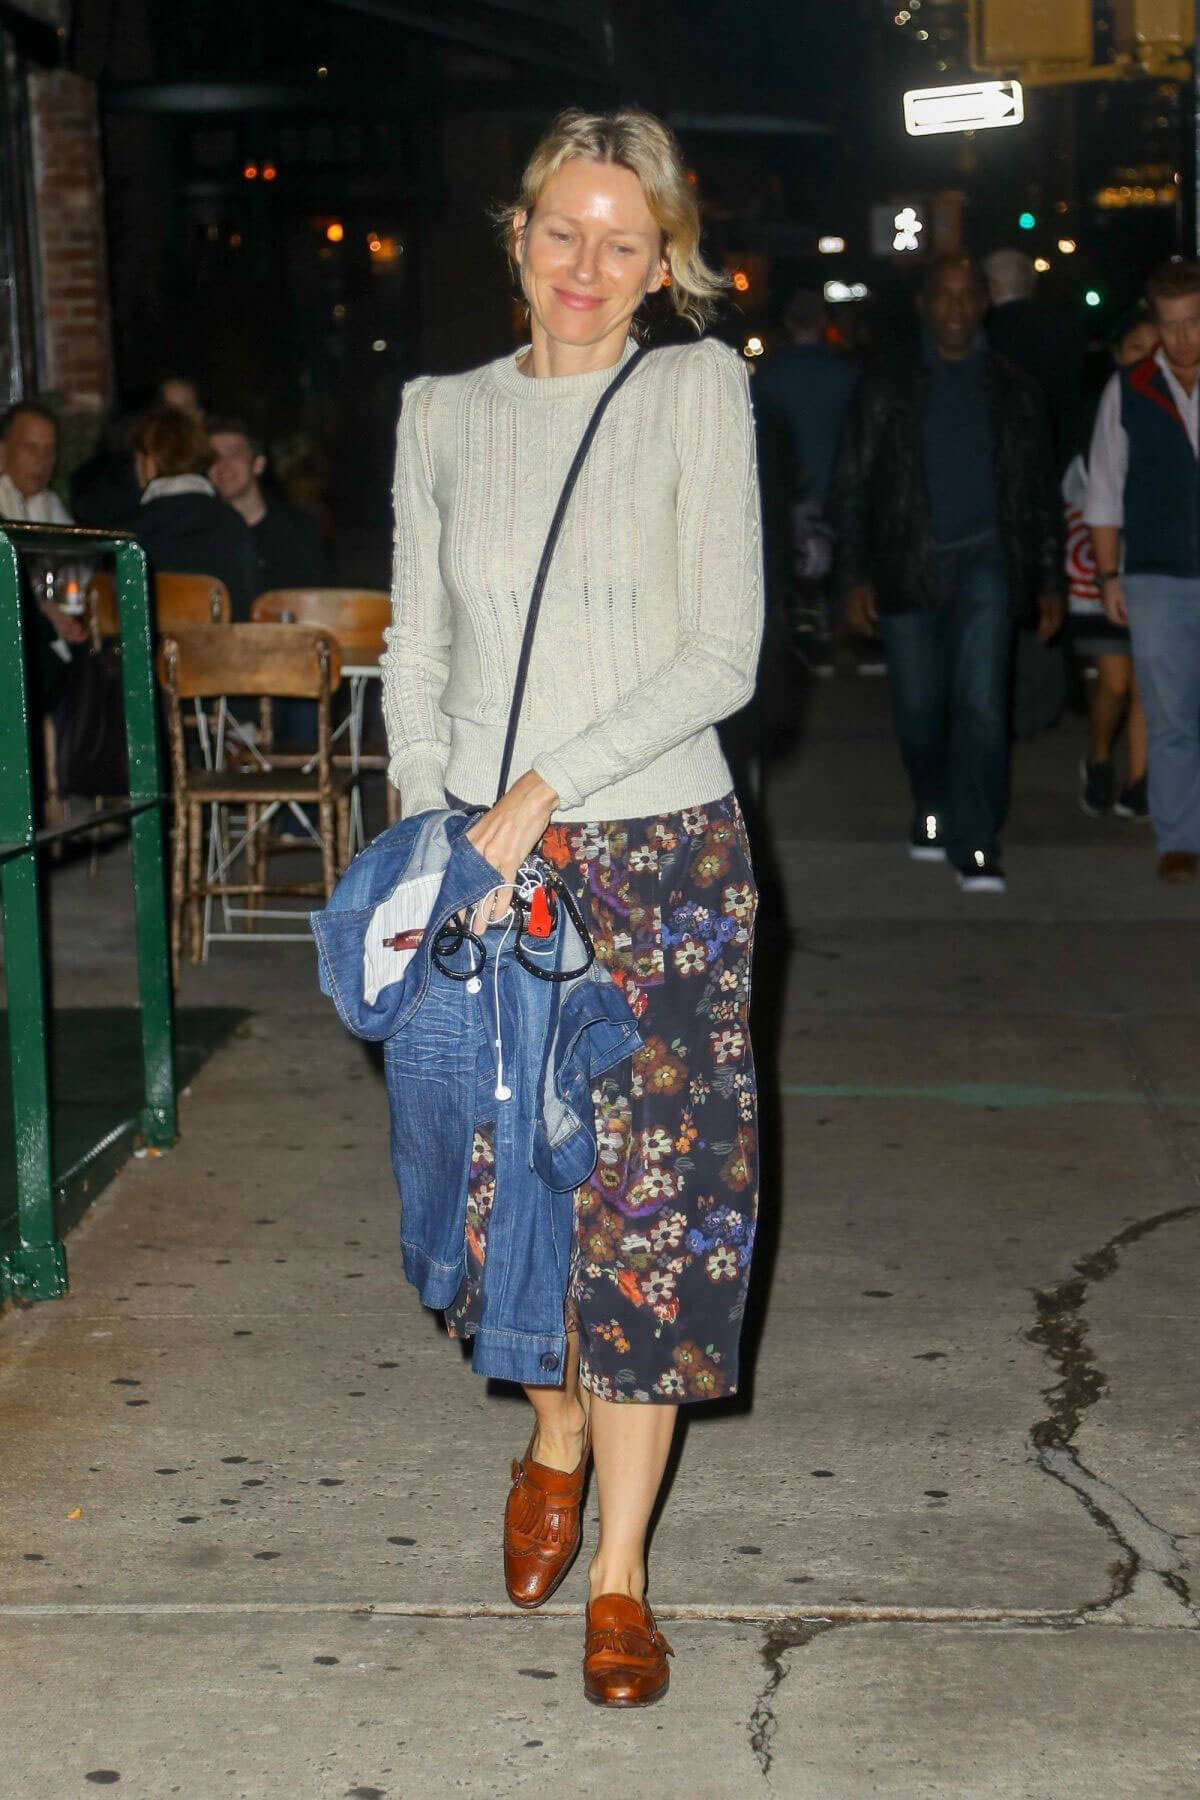 Naomi Watts wears Off White Sweater & Flowers Printed Skirt Night Out in New York